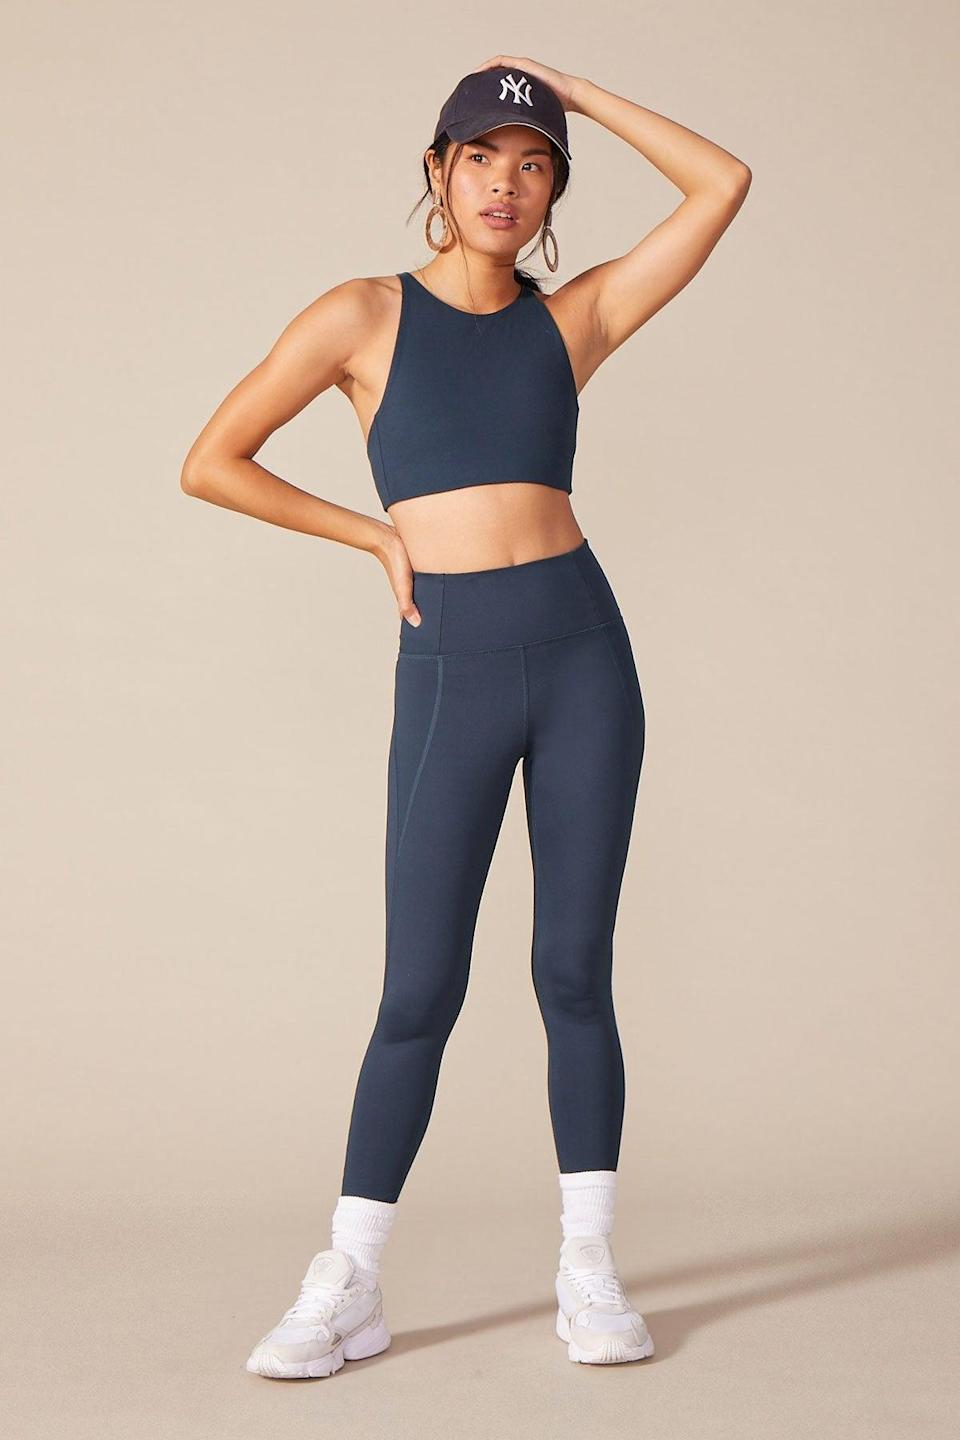 """<h3><h2>Girlfriend Collective Midnight Compressive High-Rise Legging</h2></h3><br><strong><em>Overall Score: 4.0</em></strong><em><br></em><br><strong>Stretch: 4.0</strong><br>I don't mean to brag, but I was able to test out a set from Girlfriend Collective while taking a hike in Hawaii (I know, right?!). The pair I tried out definitely has some great stretch to them, and they're also soft and comfy AF.<br><br><strong>Sweat wicking: 4.3</strong><br>The temps in Hawaii were around 80 degrees, and let me tell you — I'm the kind of person who can <em>easily</em> work up a sweat. I completed the hike without feeling super uncomfortable or drenched in my own sweat, so I'd give it a thumbs up.<br><br><em>— Lizzy</em><br><br><strong>Girlfriend Collective</strong> Midnight Compressive High-Rise Legging, $, available at <a href=""""https://go.skimresources.com/?id=30283X879131&url=https%3A%2F%2Fwww.girlfriend.com%2Fproducts%2Fmidnight-compressive-high-rise-legging%3Fvariant%3D7597773586495"""" rel=""""nofollow noopener"""" target=""""_blank"""" data-ylk=""""slk:Girlfriend Collective"""" class=""""link rapid-noclick-resp"""">Girlfriend Collective</a>"""